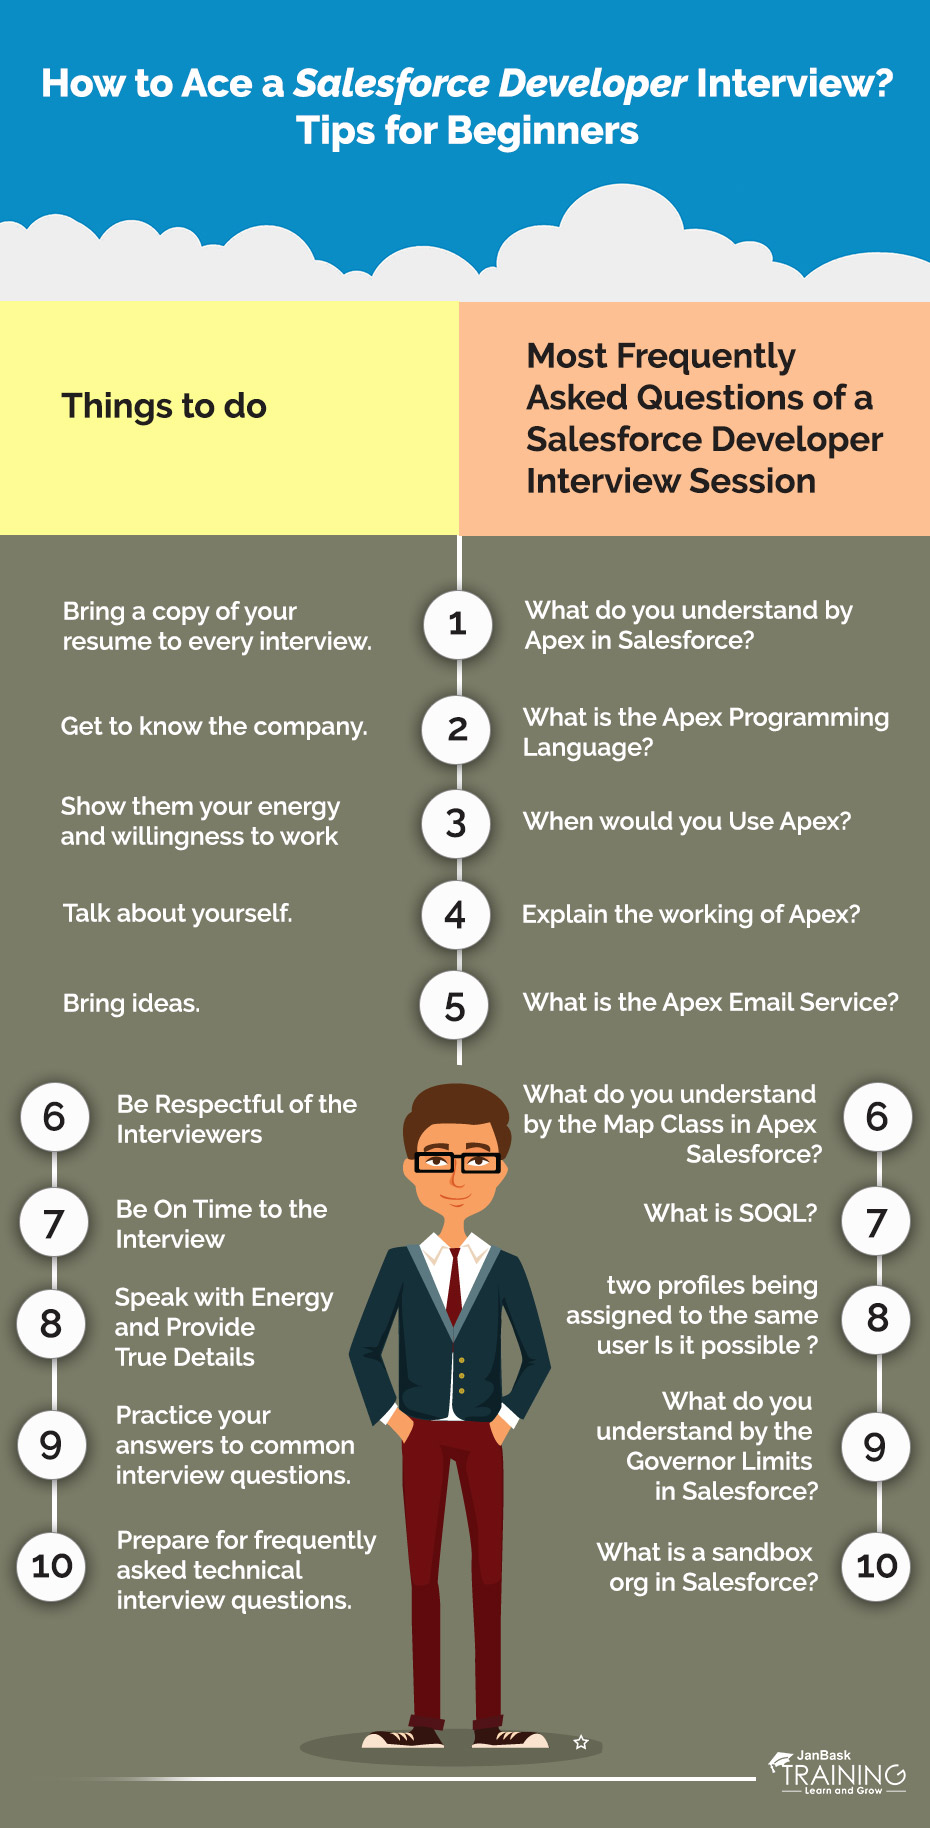 Salesforce-Developer-Interview-Tips-for-Beginners-info